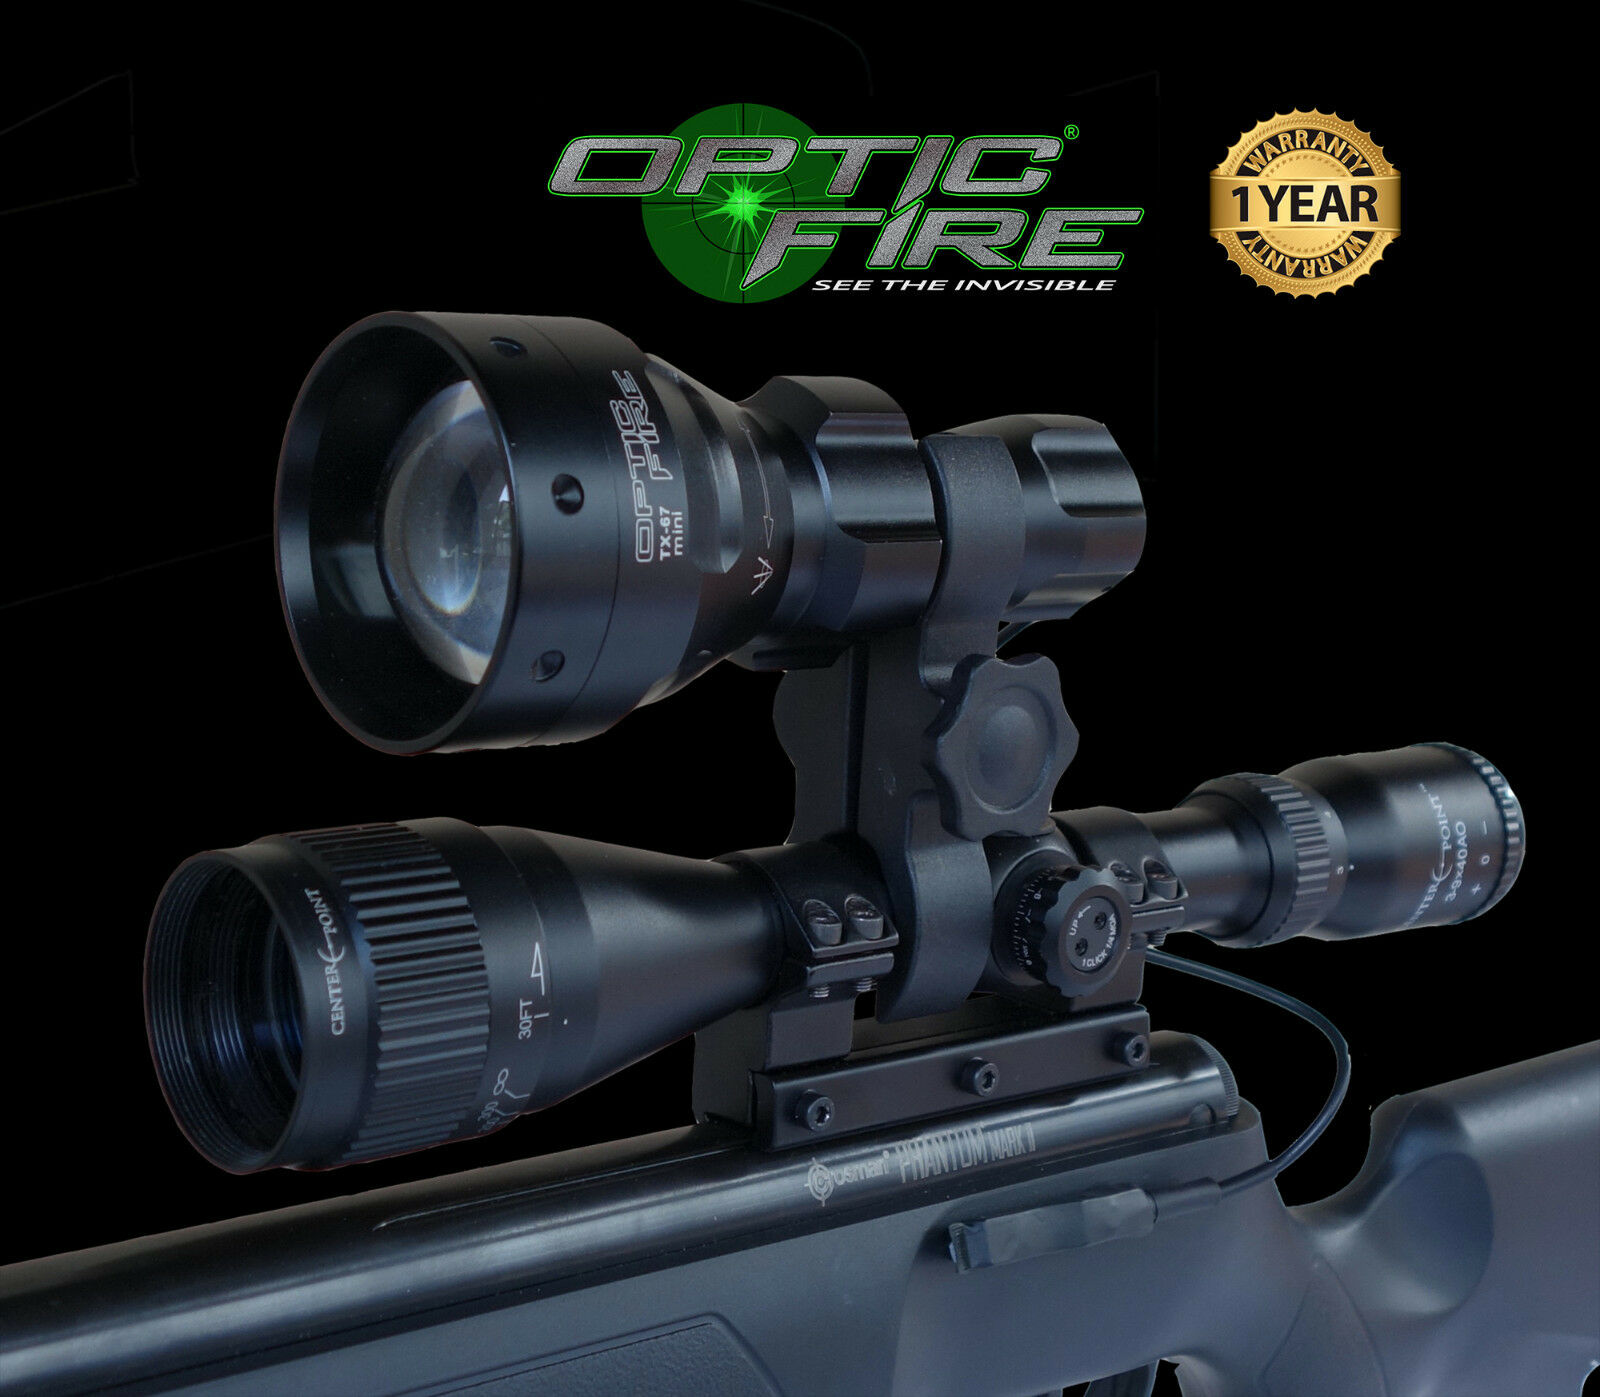 Opticfire® TX-67 T67 mini Infrared scope lamp night vision torch IR add-on kit